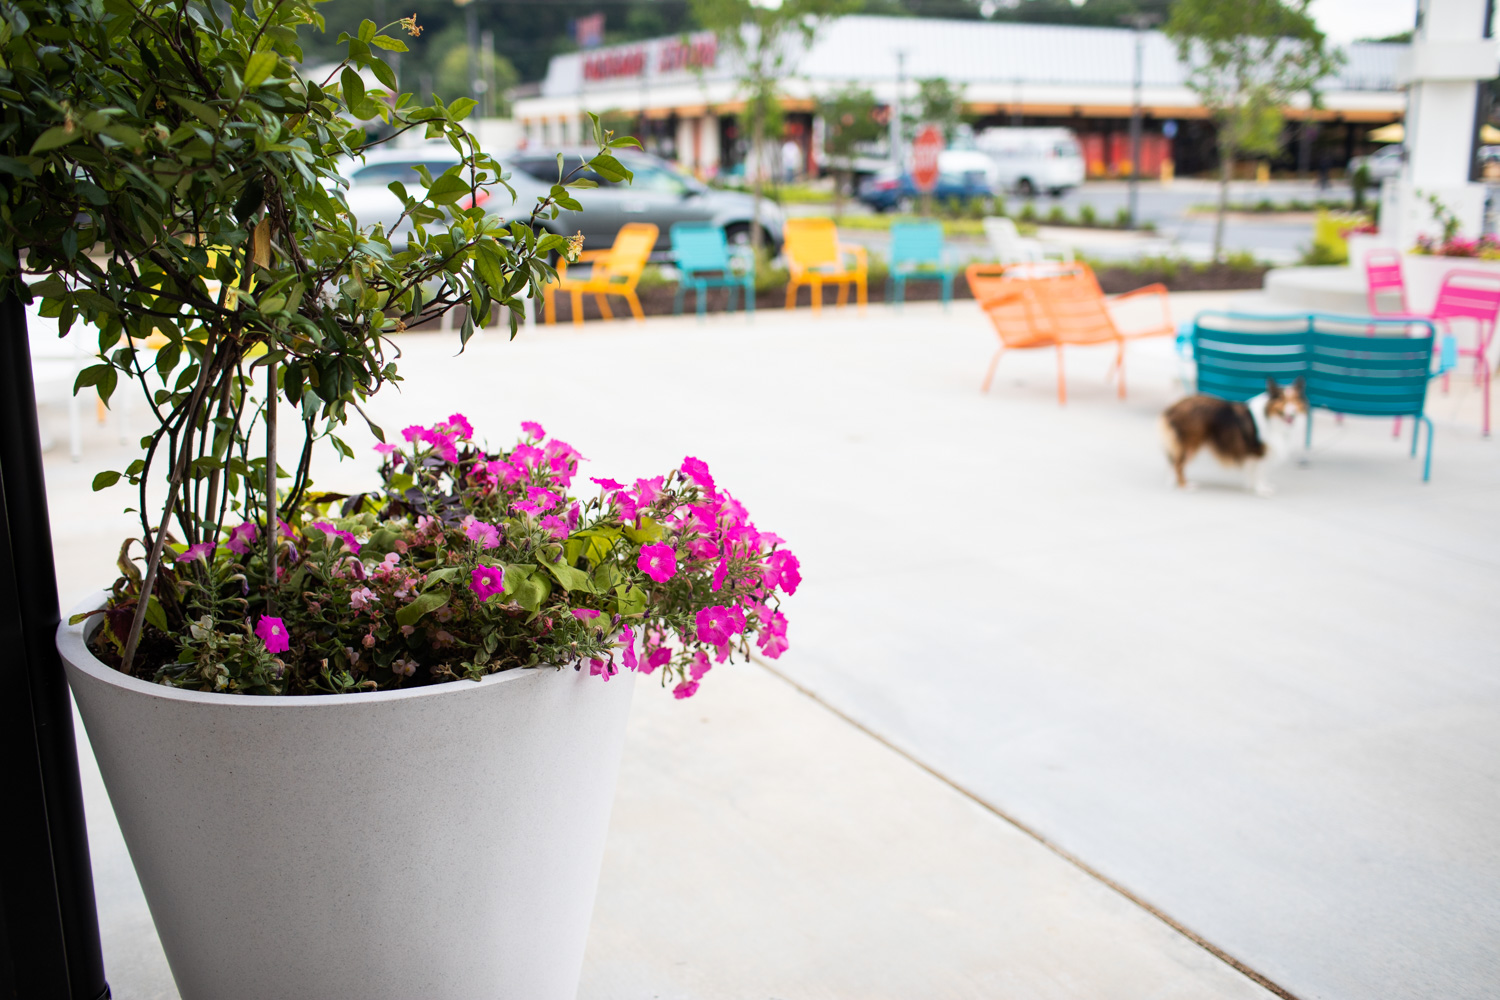 Vibrant colors are the theme at Spiller Park Coffee.